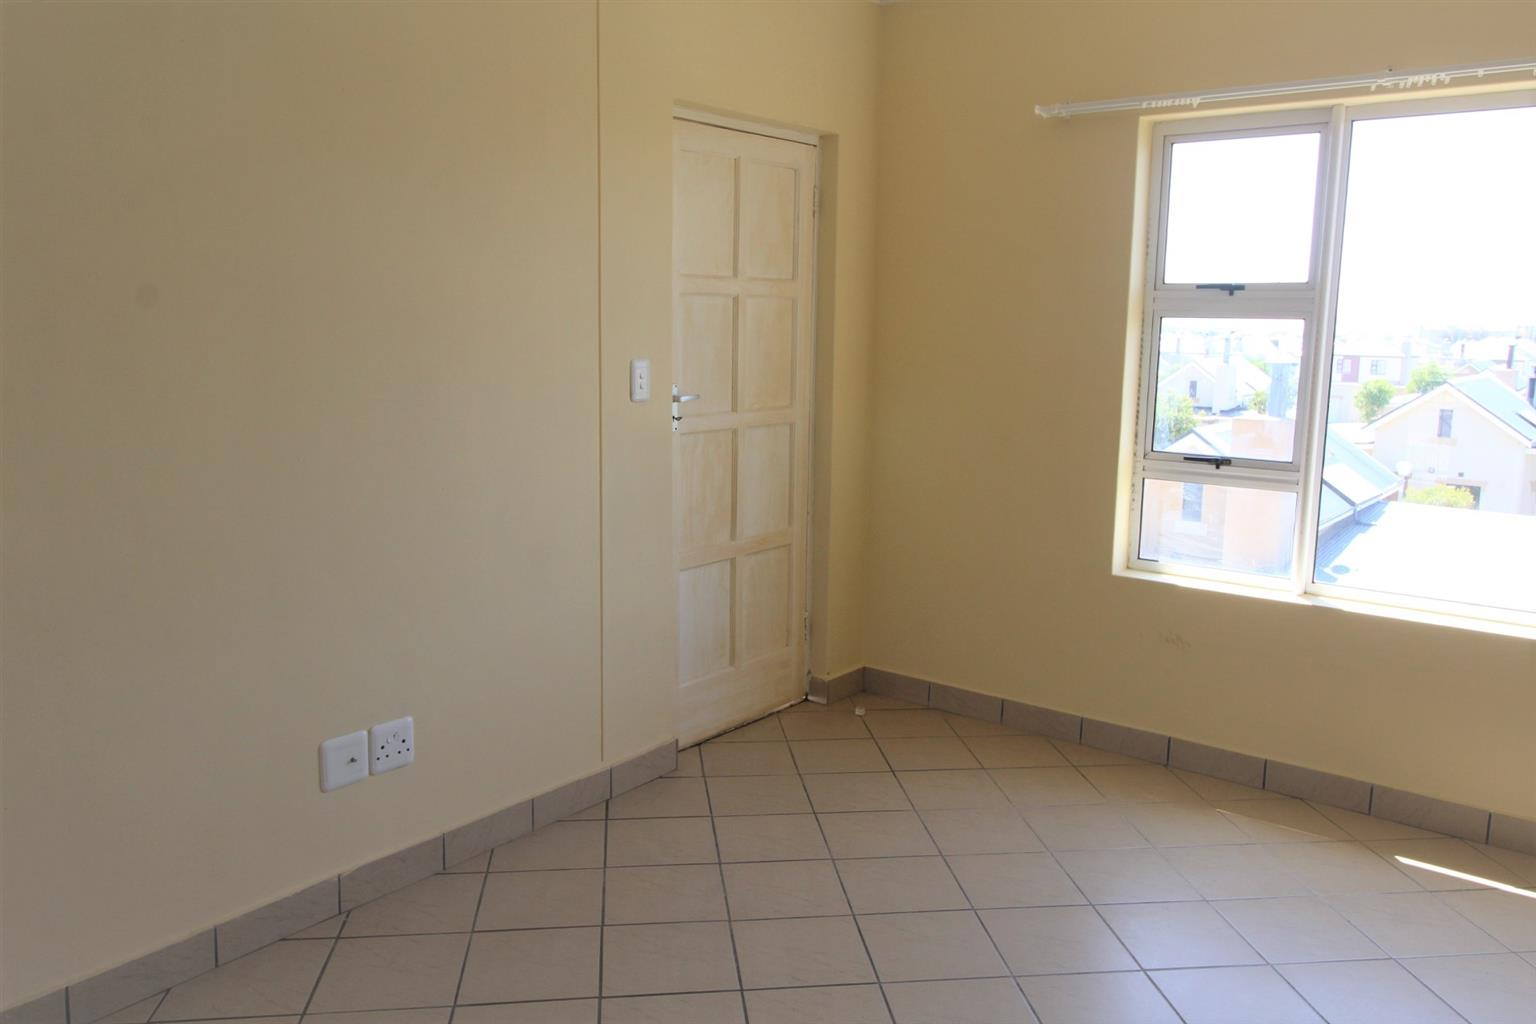 Flat mate to share a 2 bed apartment